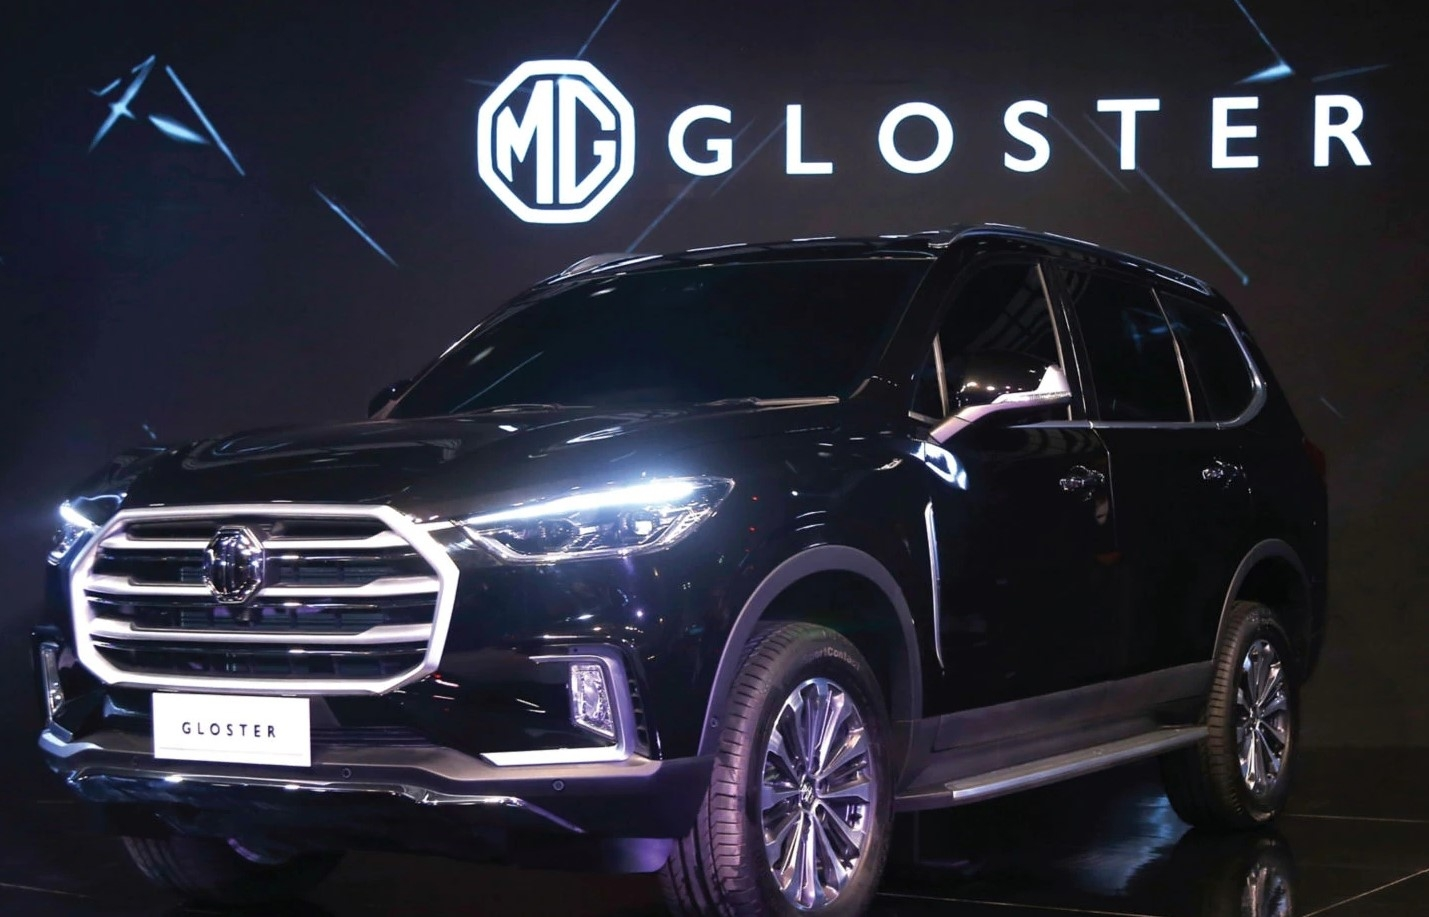 MG Motor's Gloster is expected to hit the Indian market by Diwali.